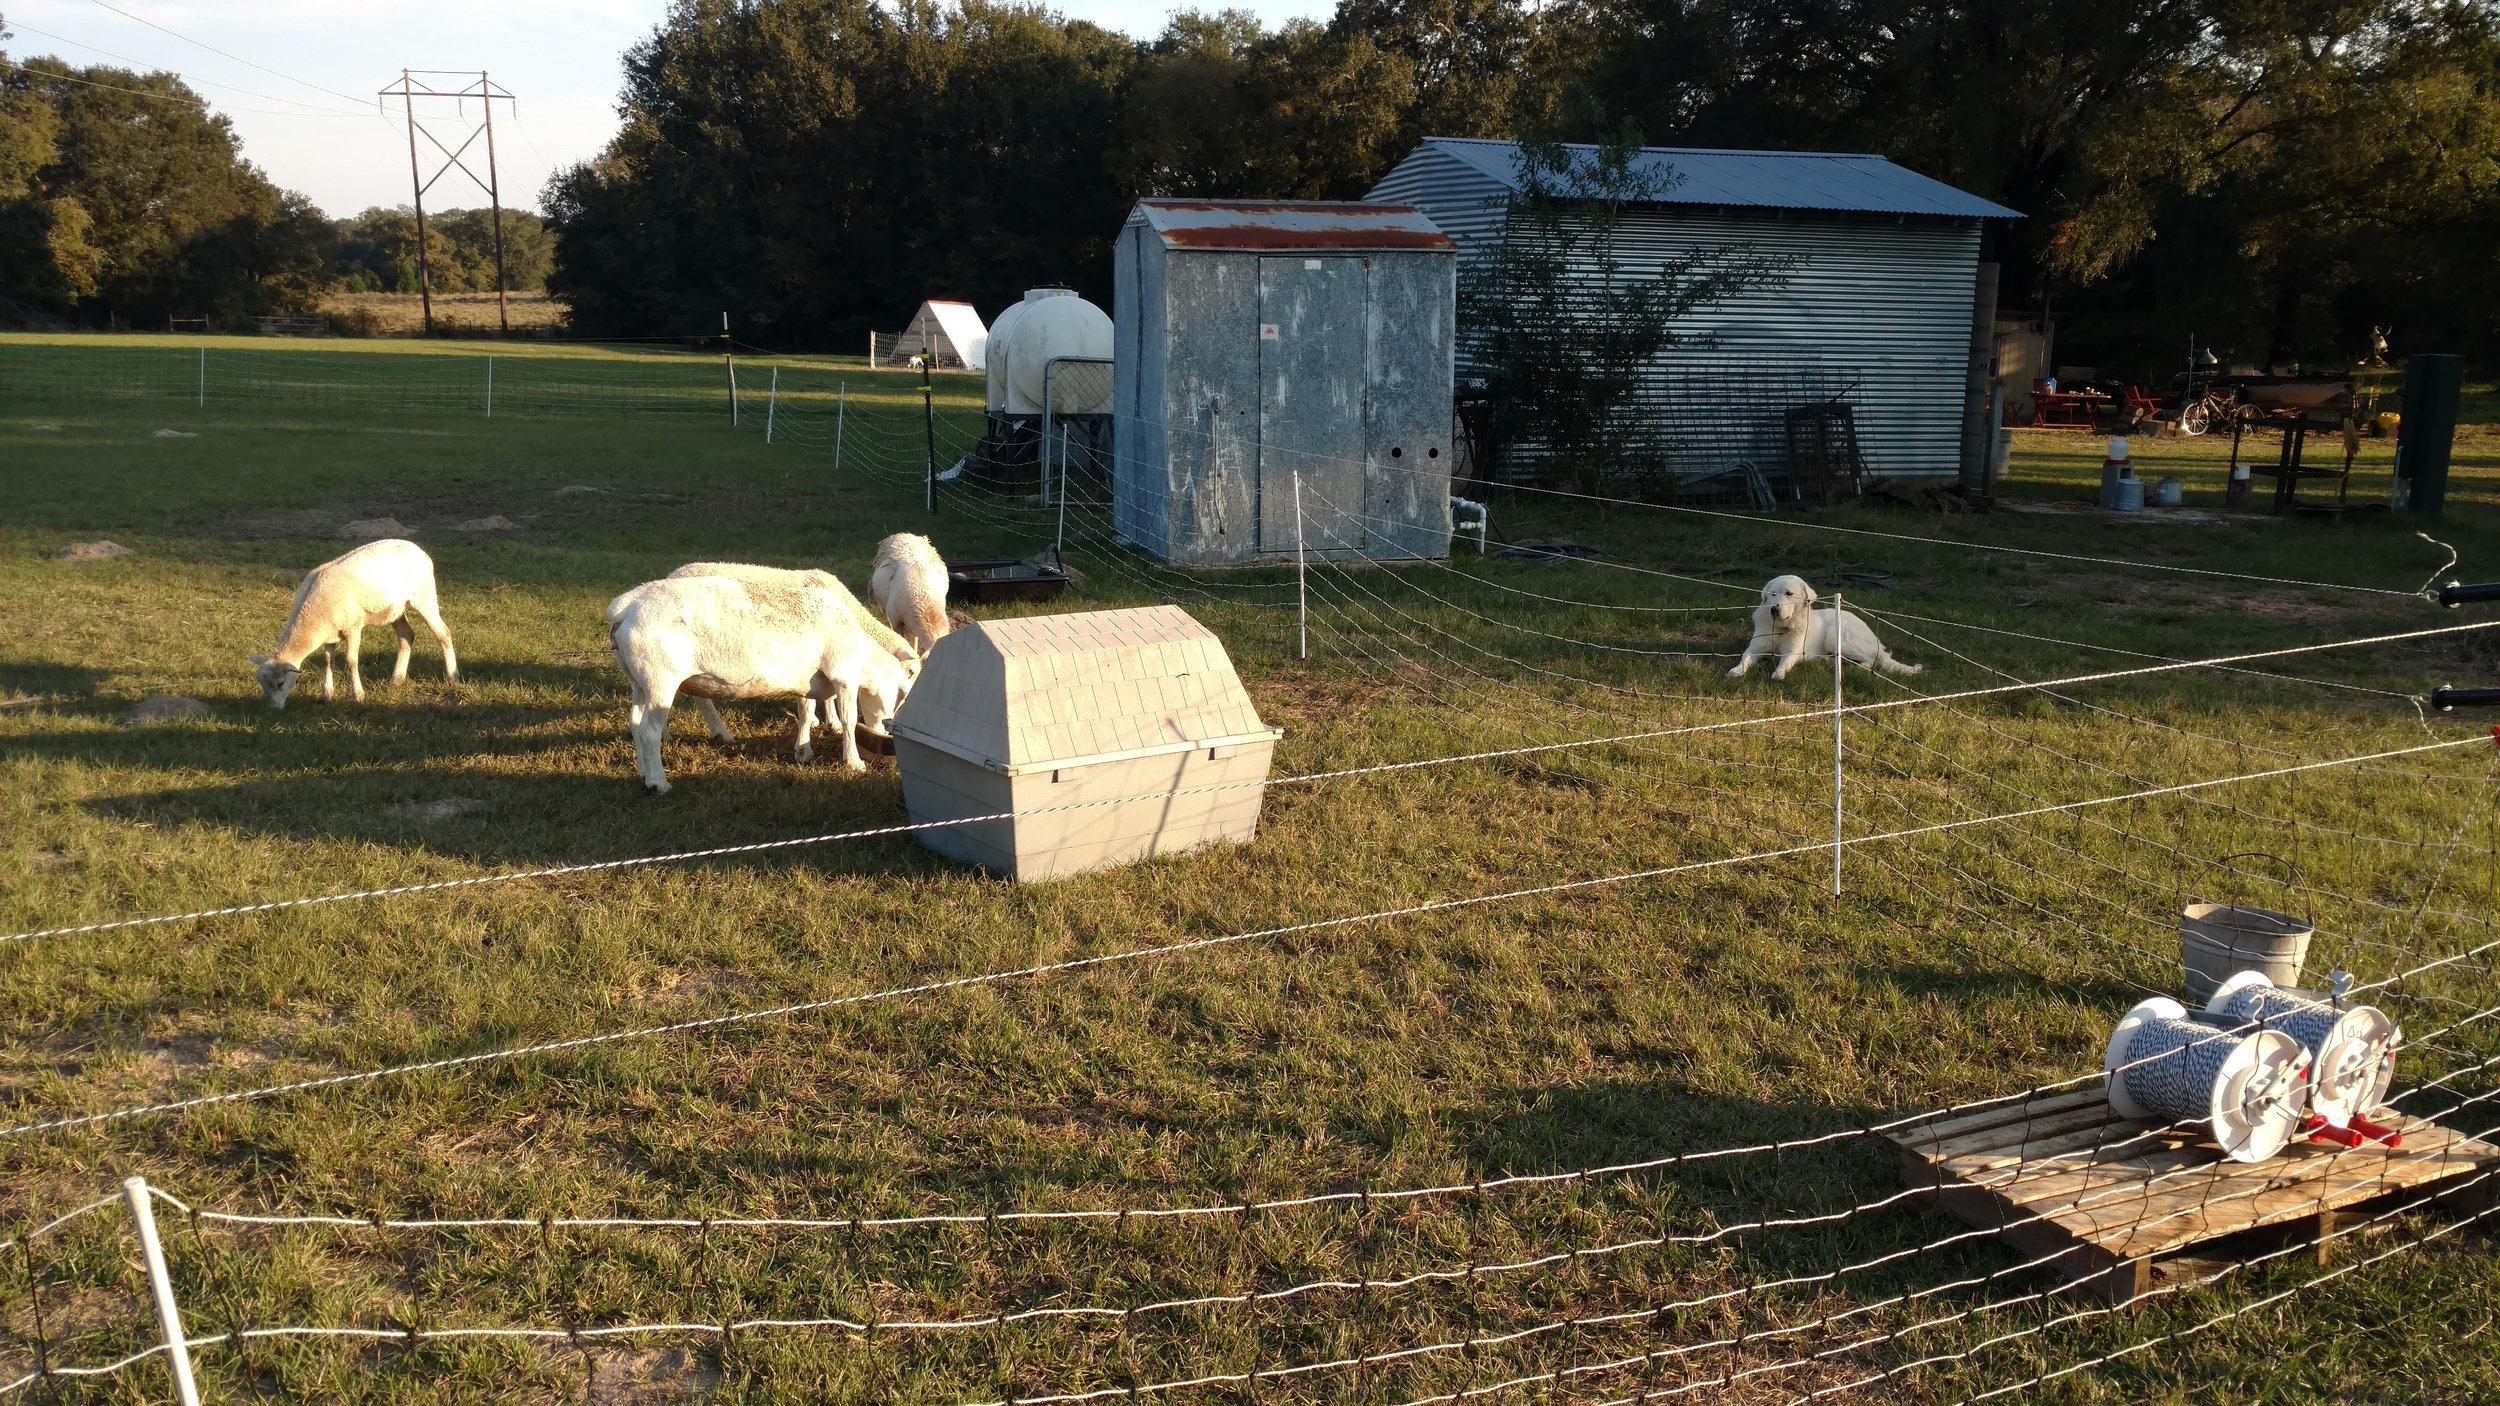 Lillie and her sheep! Notice we were still trying to figure out the electrical fencing situation!